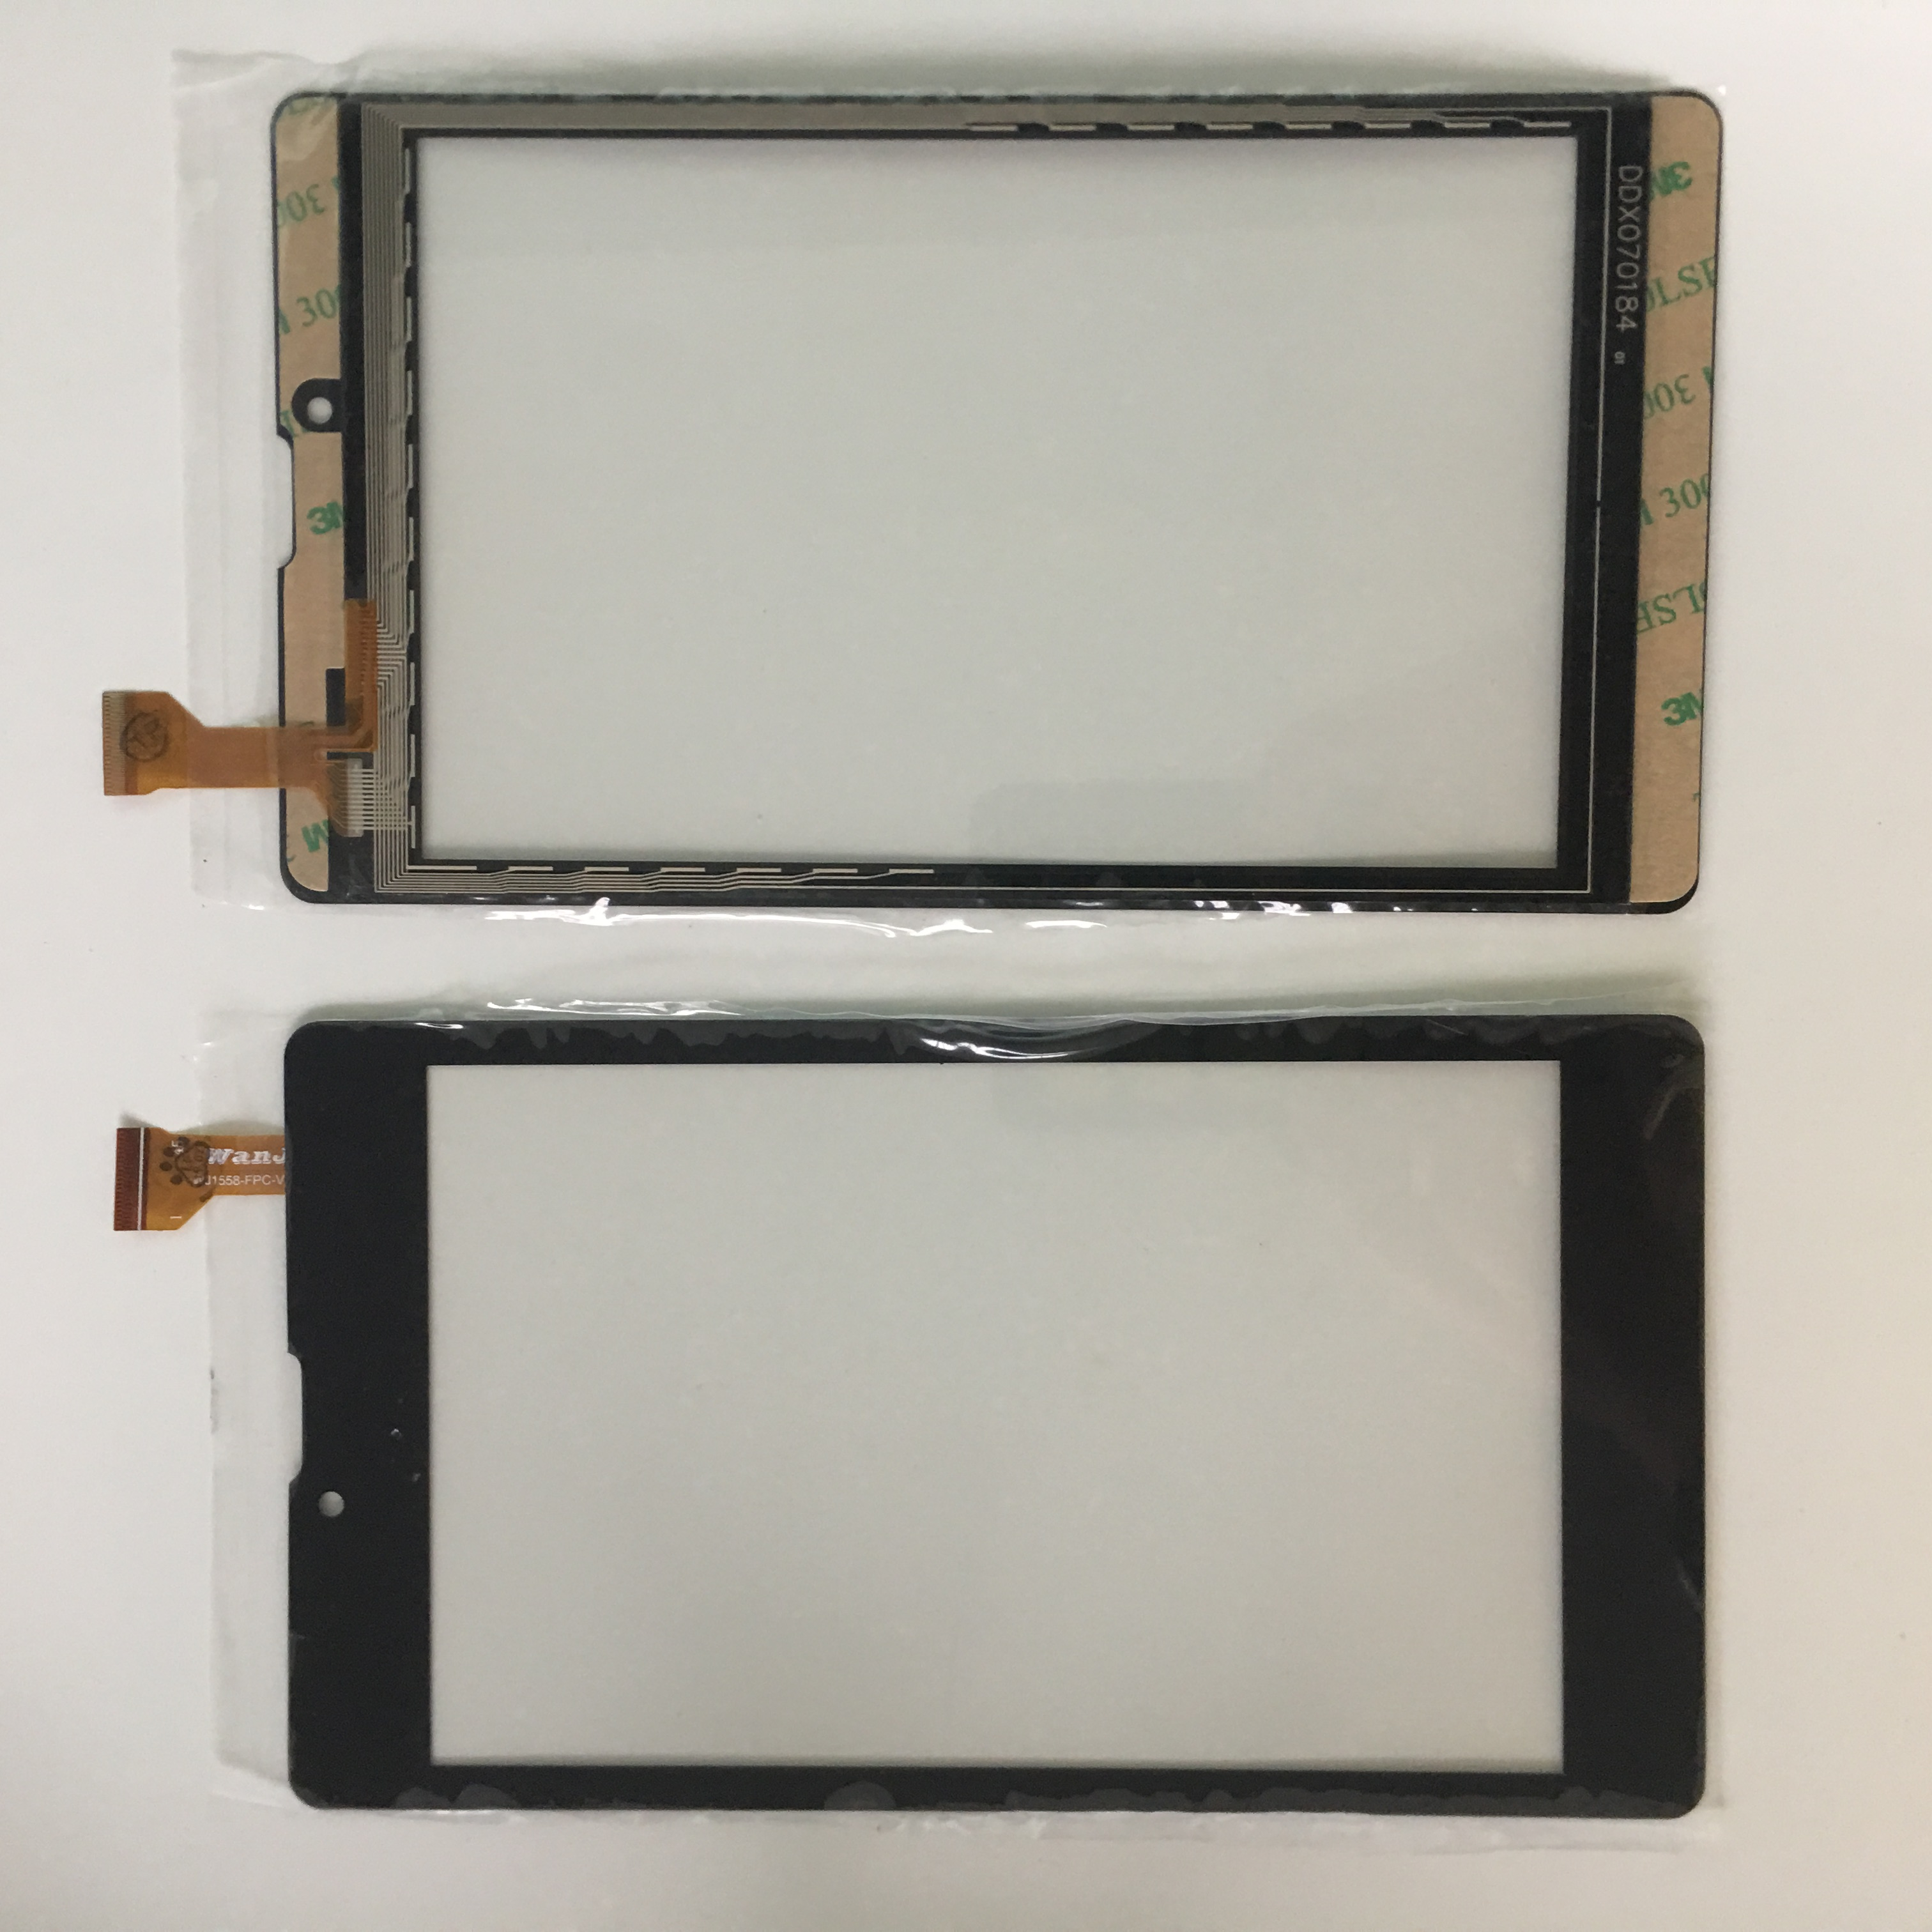 7inch Touchscreen Digma Plane <font><b>7700</b></font> 4G sensor PS1127PL front glass 189*107mm touch screen WJ1588-FPC V2.0 black image